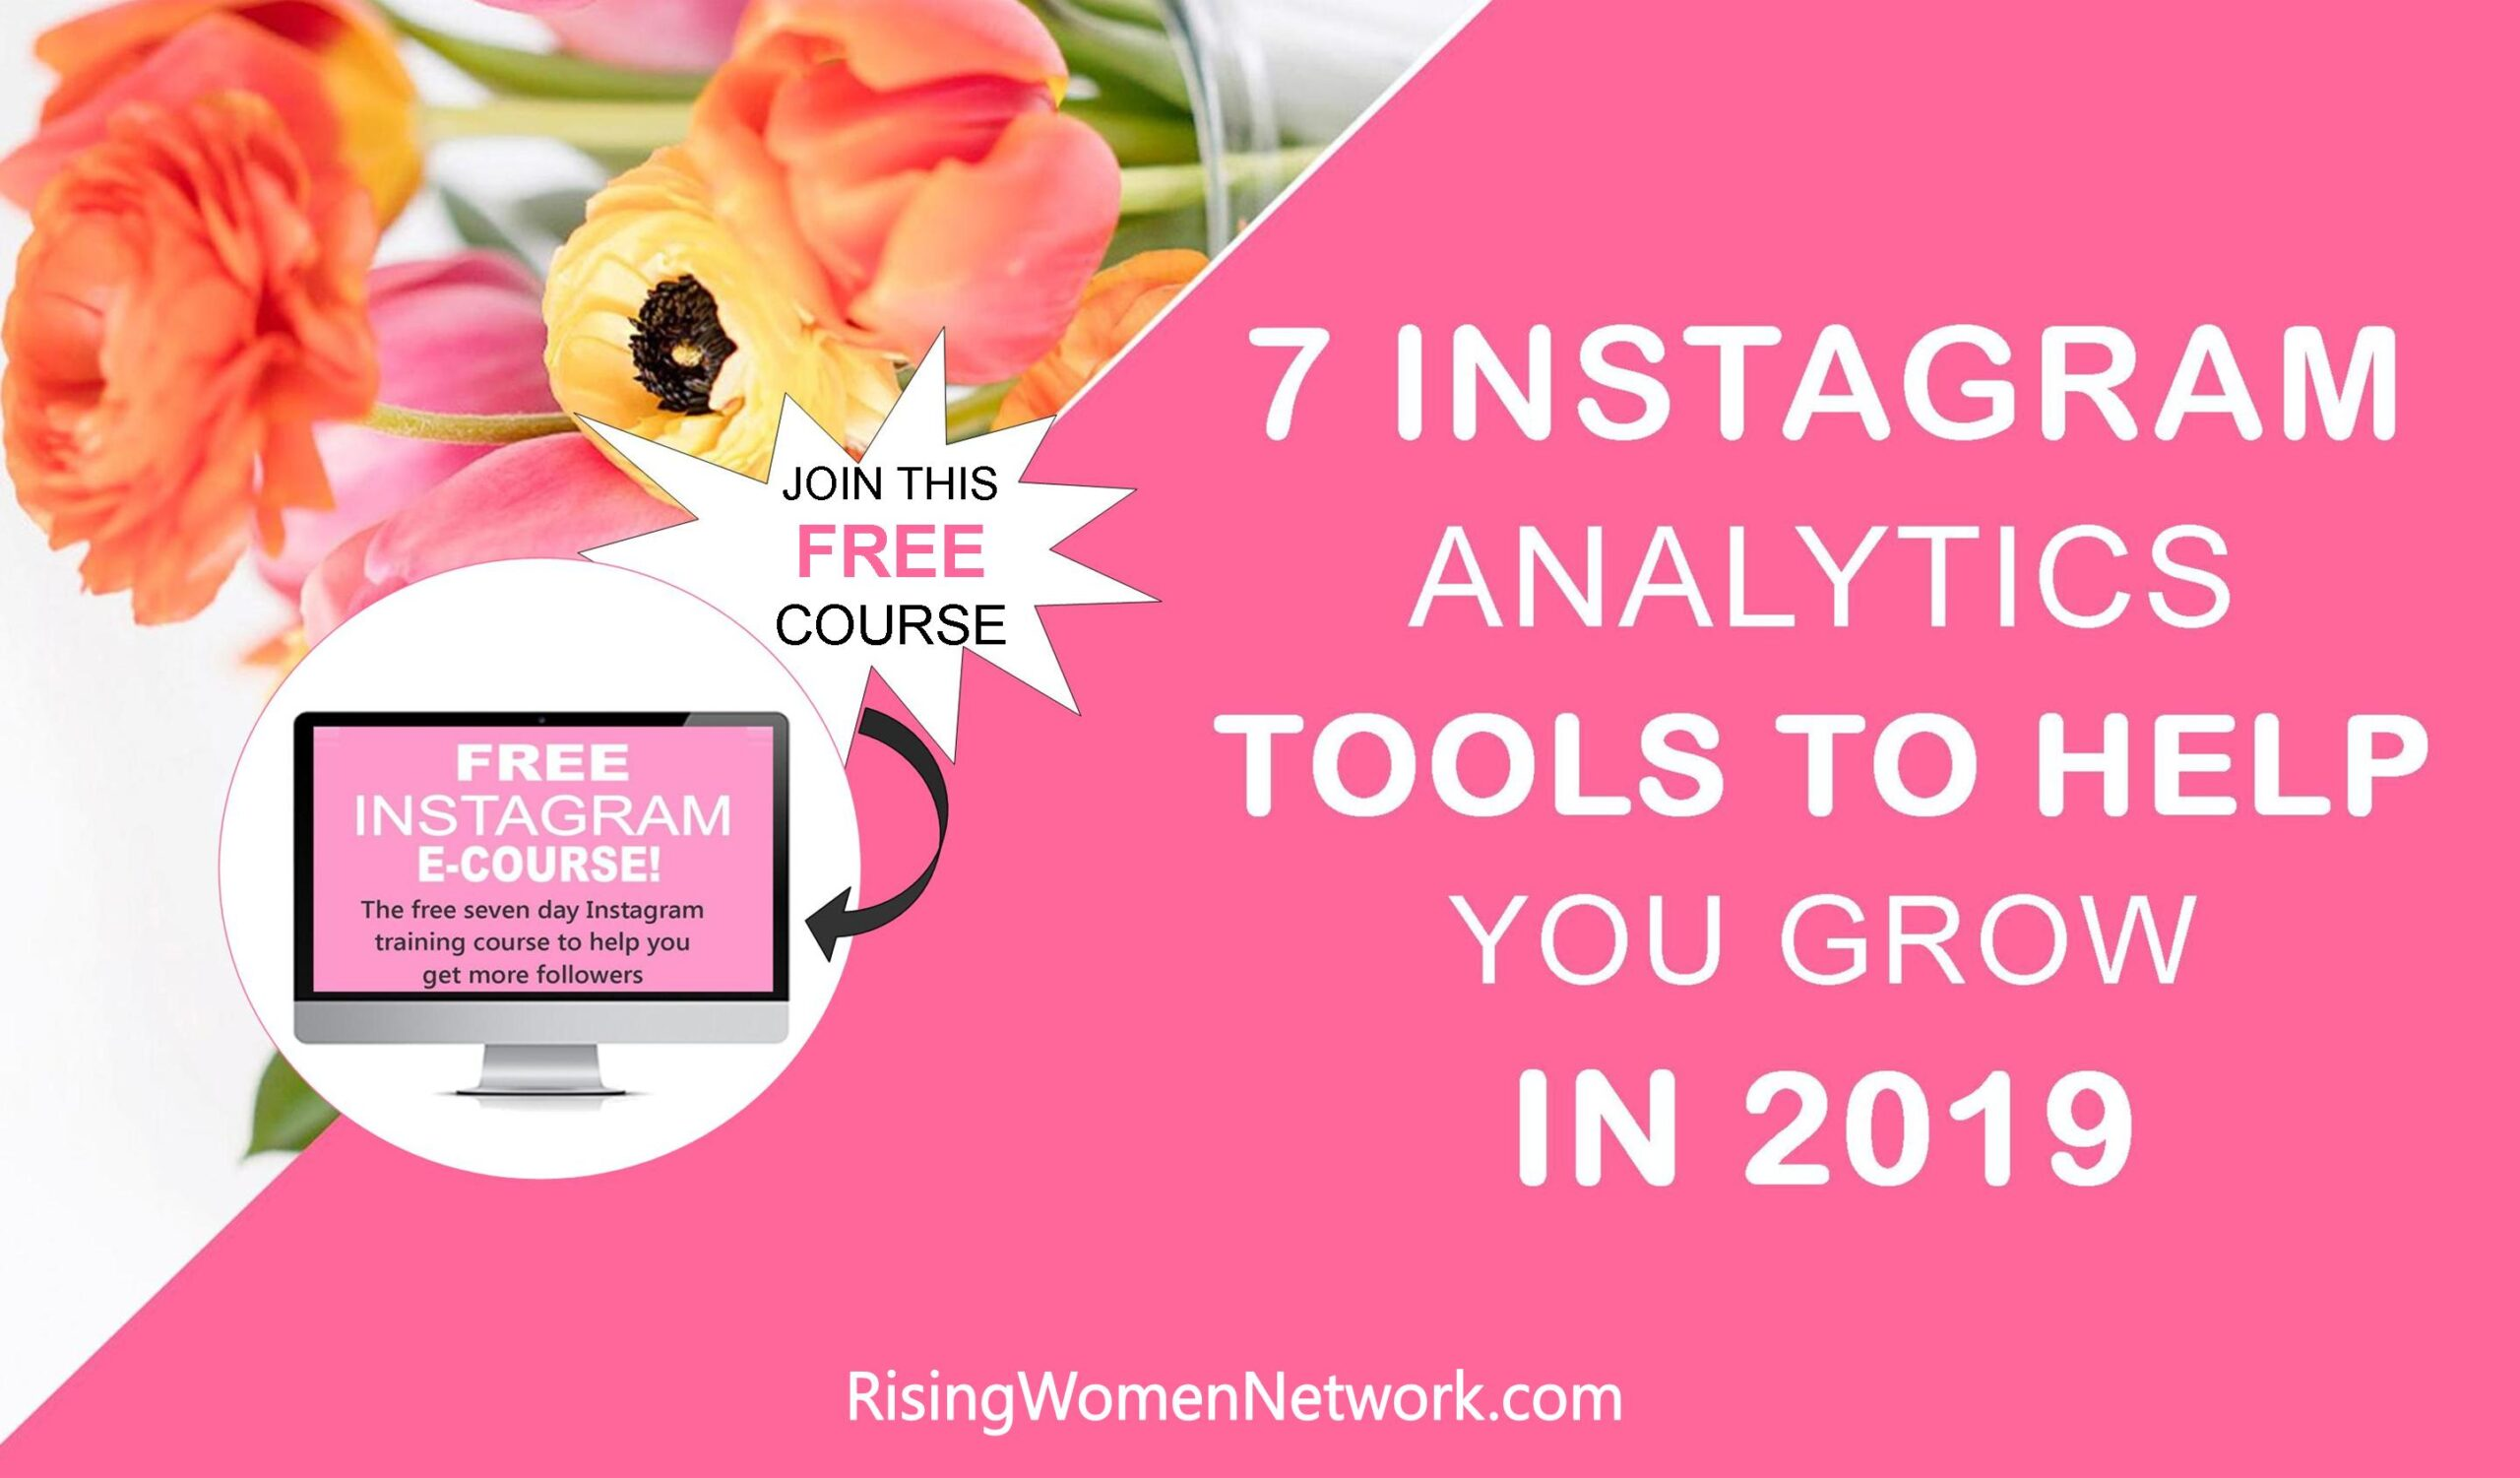 7 Instagram Analytics Tools to Help You Grow in 2019